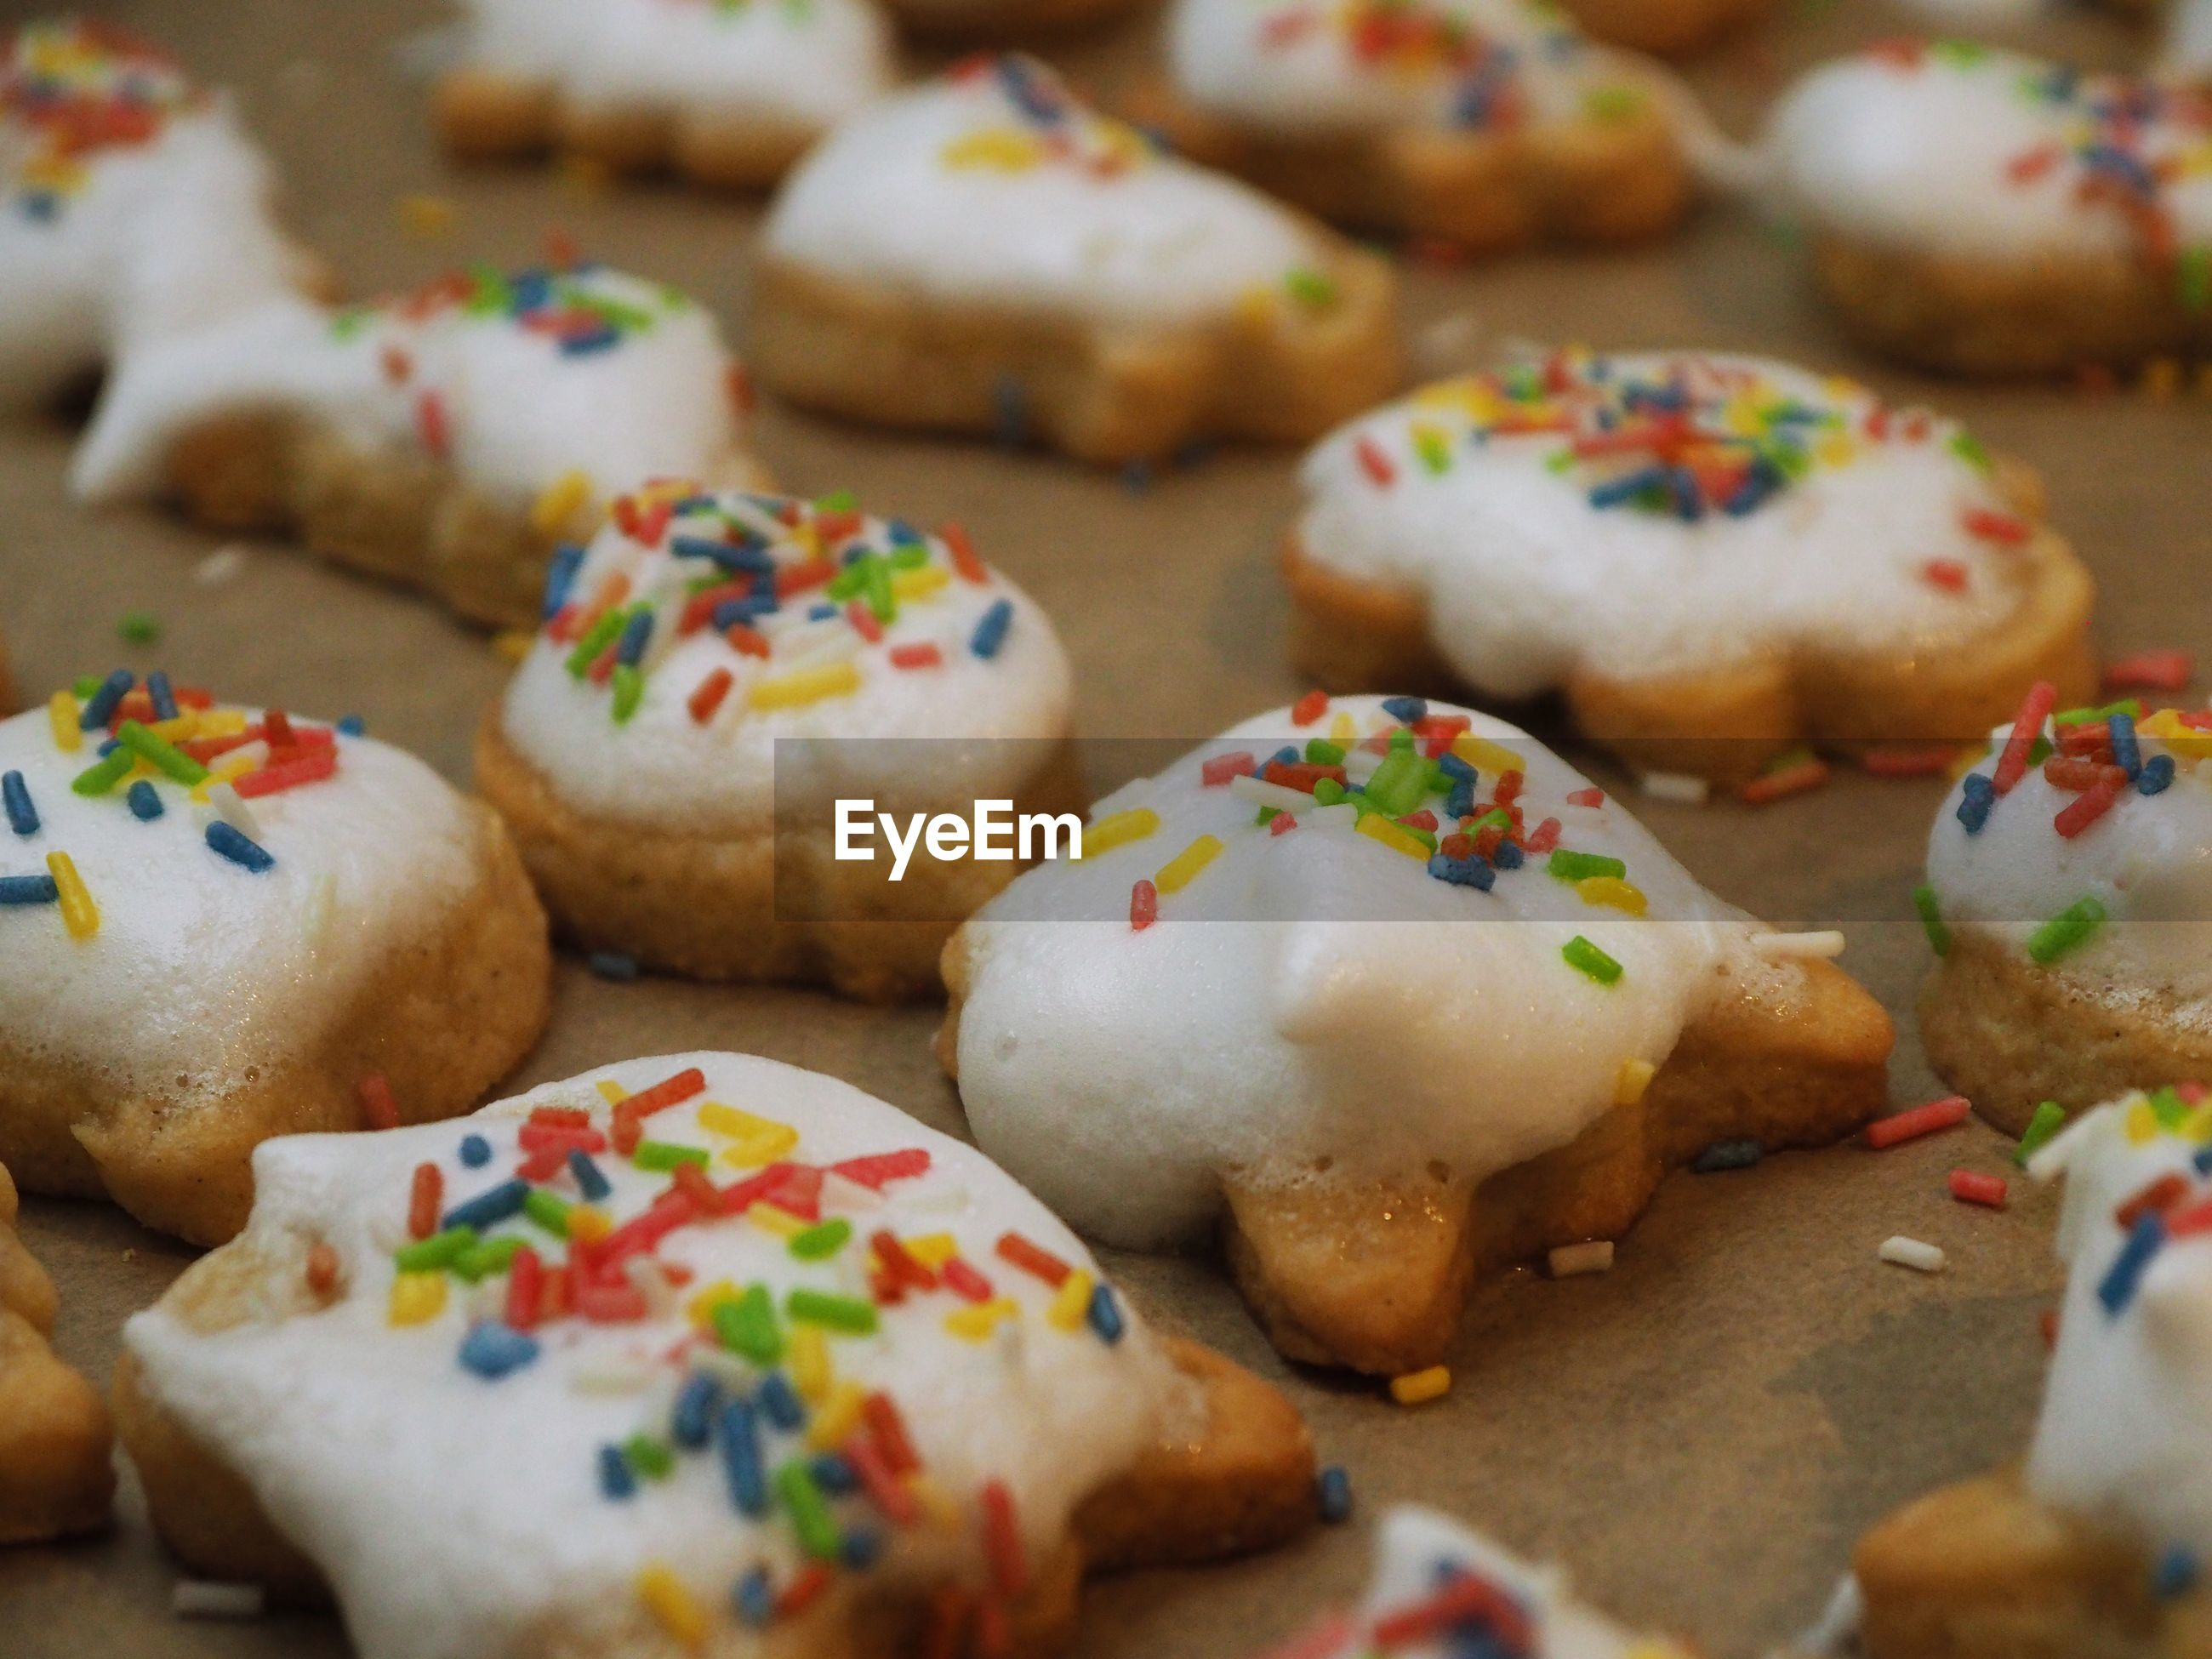 CLOSE-UP OF COOKIES AND VEGETABLES